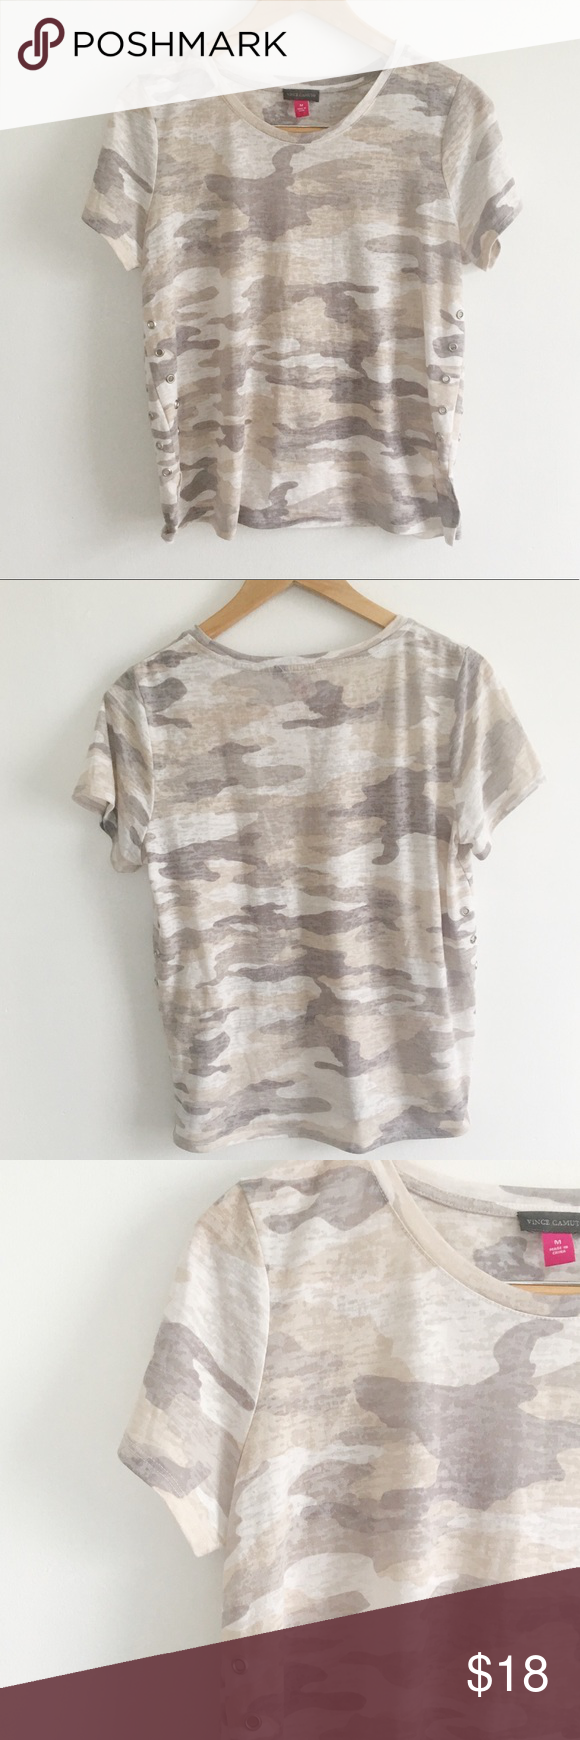 12d4fbec222ec Vince Camuto Camo Tee Adorable camo tee by Vince Camuto. This is a super  soft